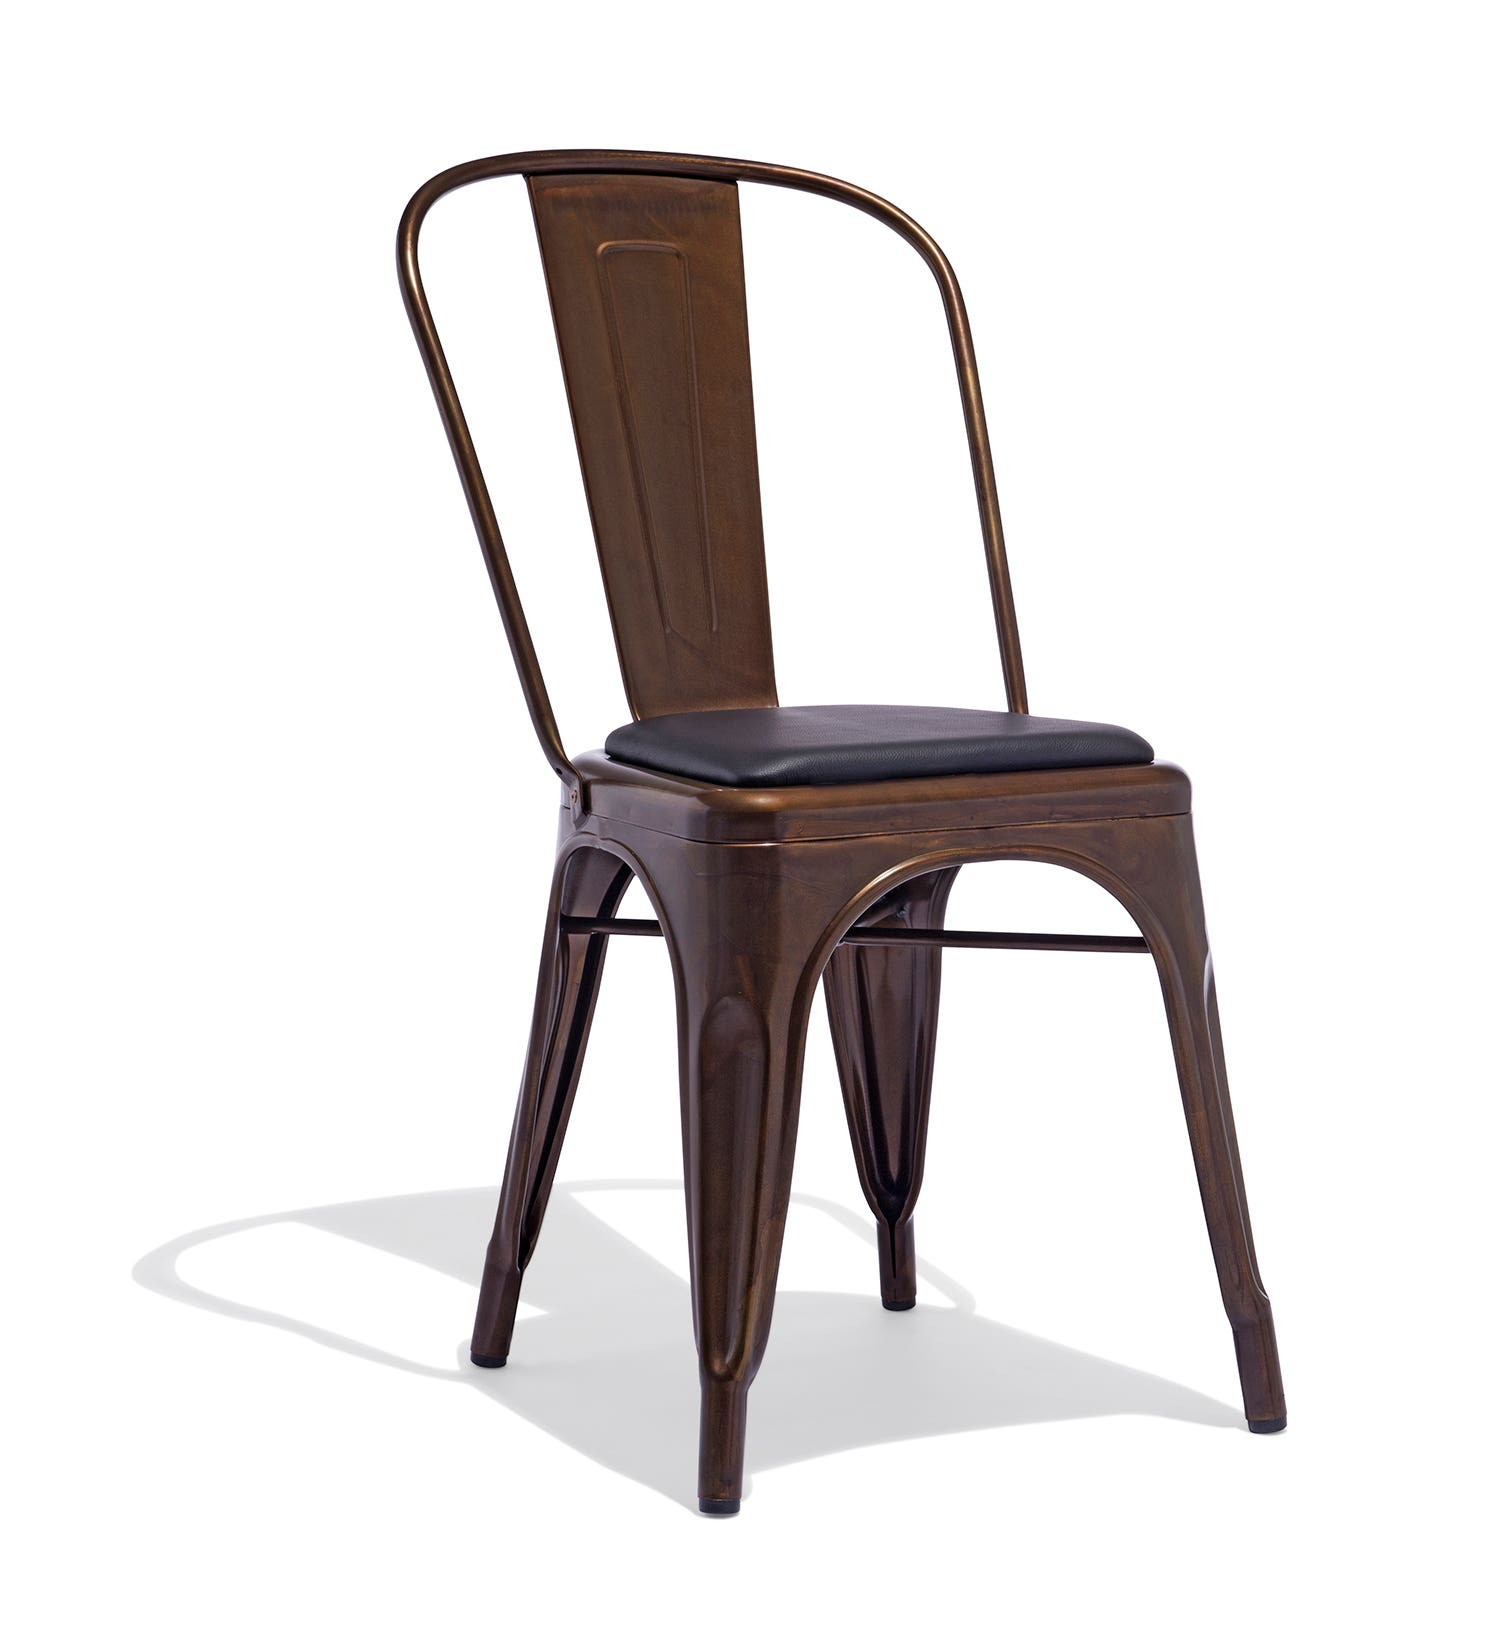 French Bistro Chairs – Bistro Bar Stools Cushions & More Furniture